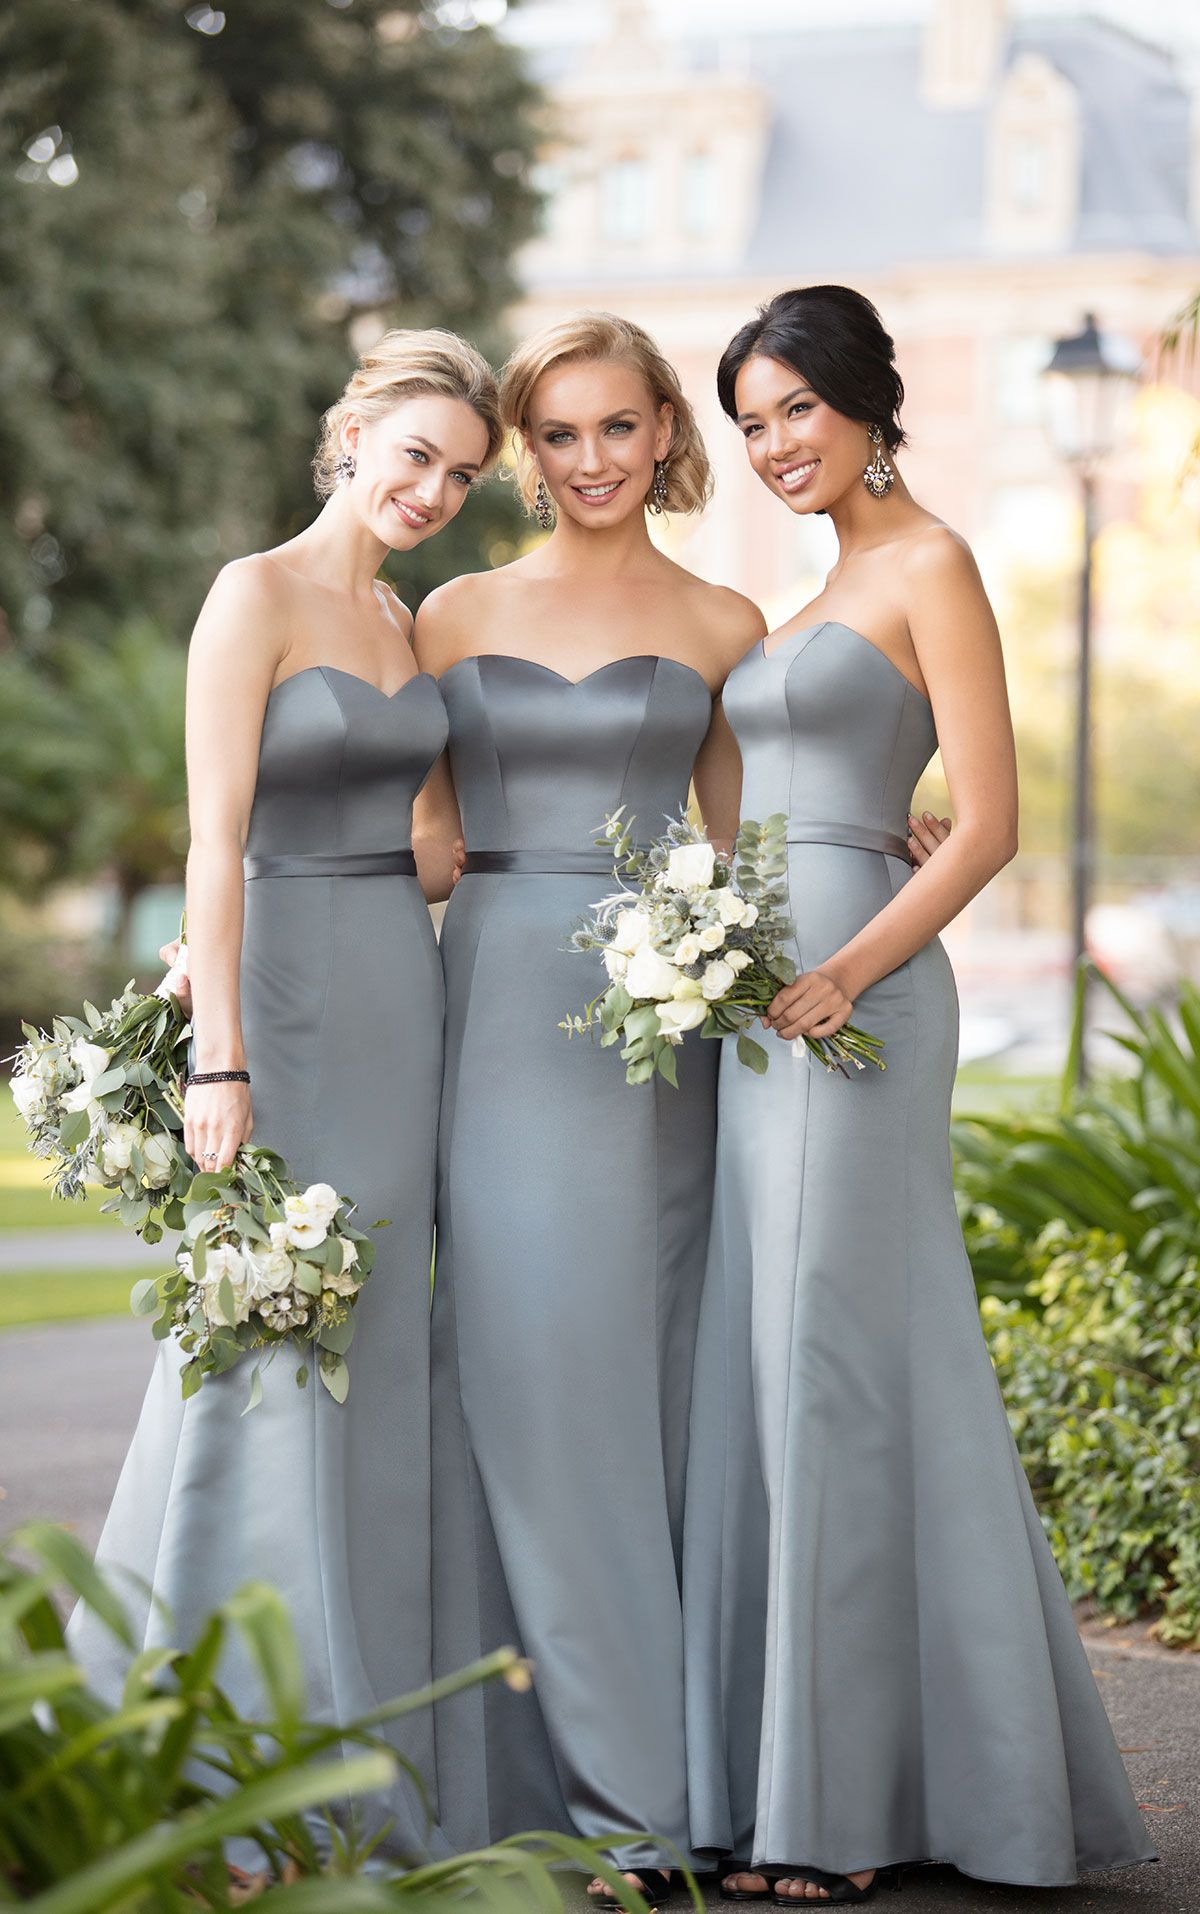 d34e0d0d3f0 Classic Strapless Bridesmaid Dress - Sorella Vita Bridesmaid Dresses ...